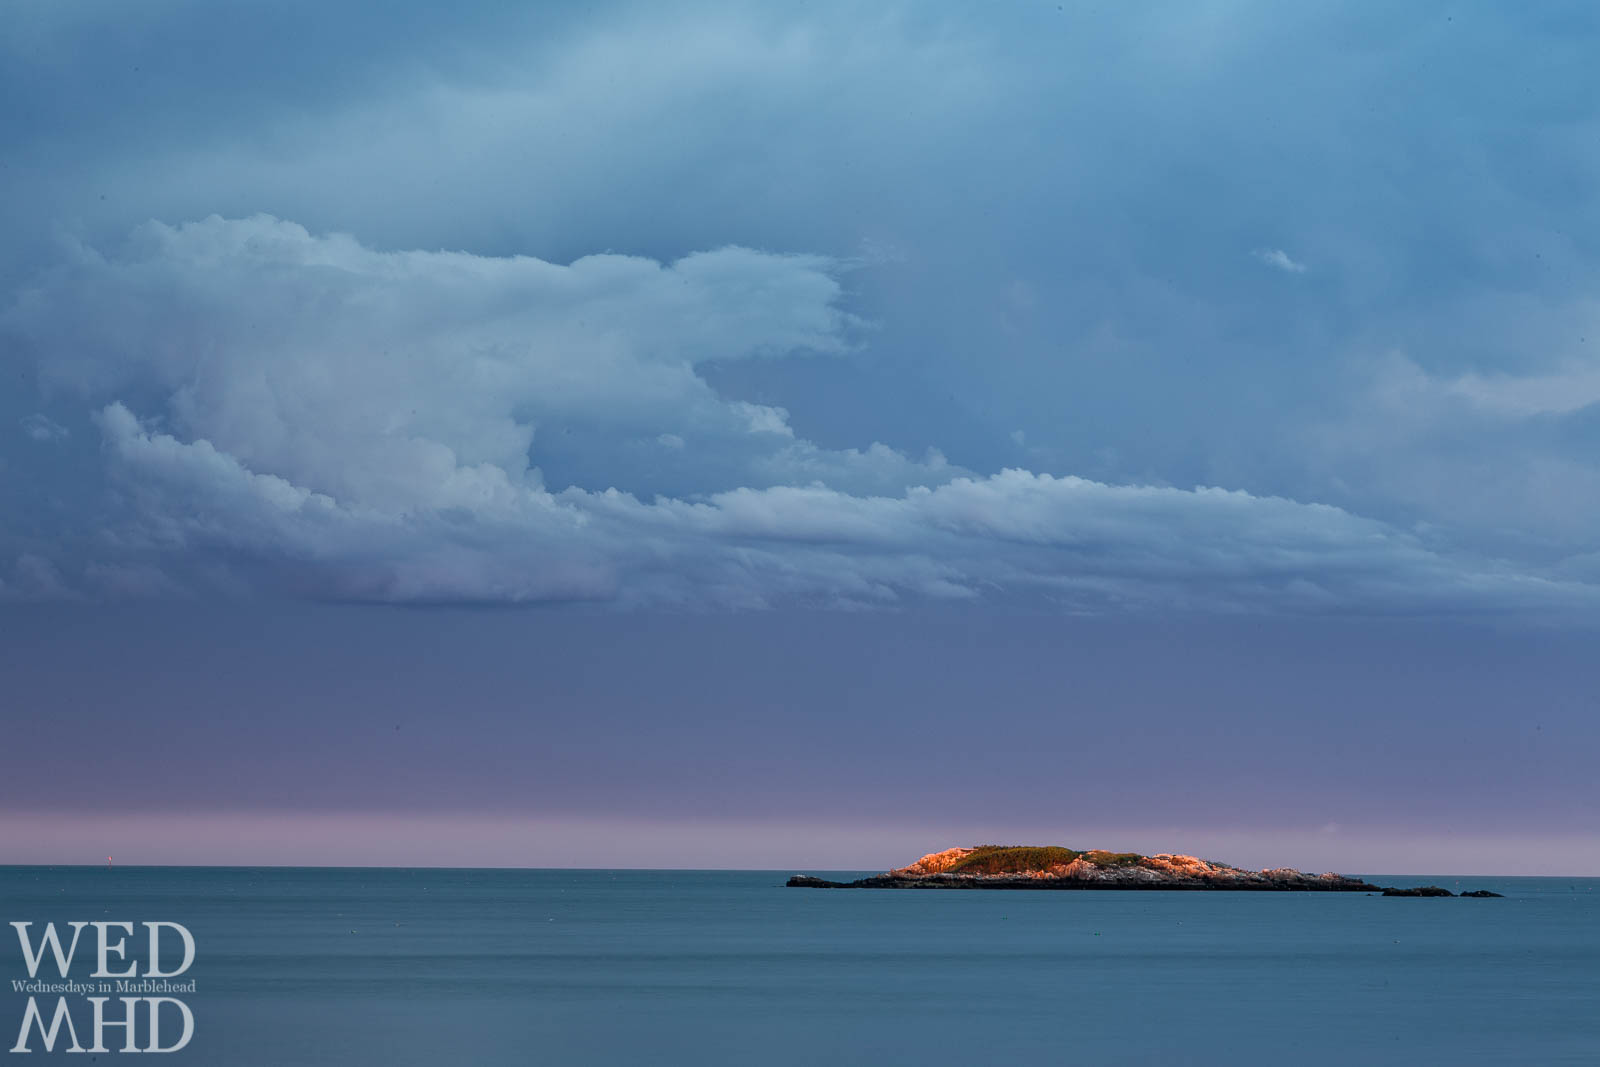 A long exposure smooths the ocean while capture clouds as the last light of sunset bathes Ram's Island